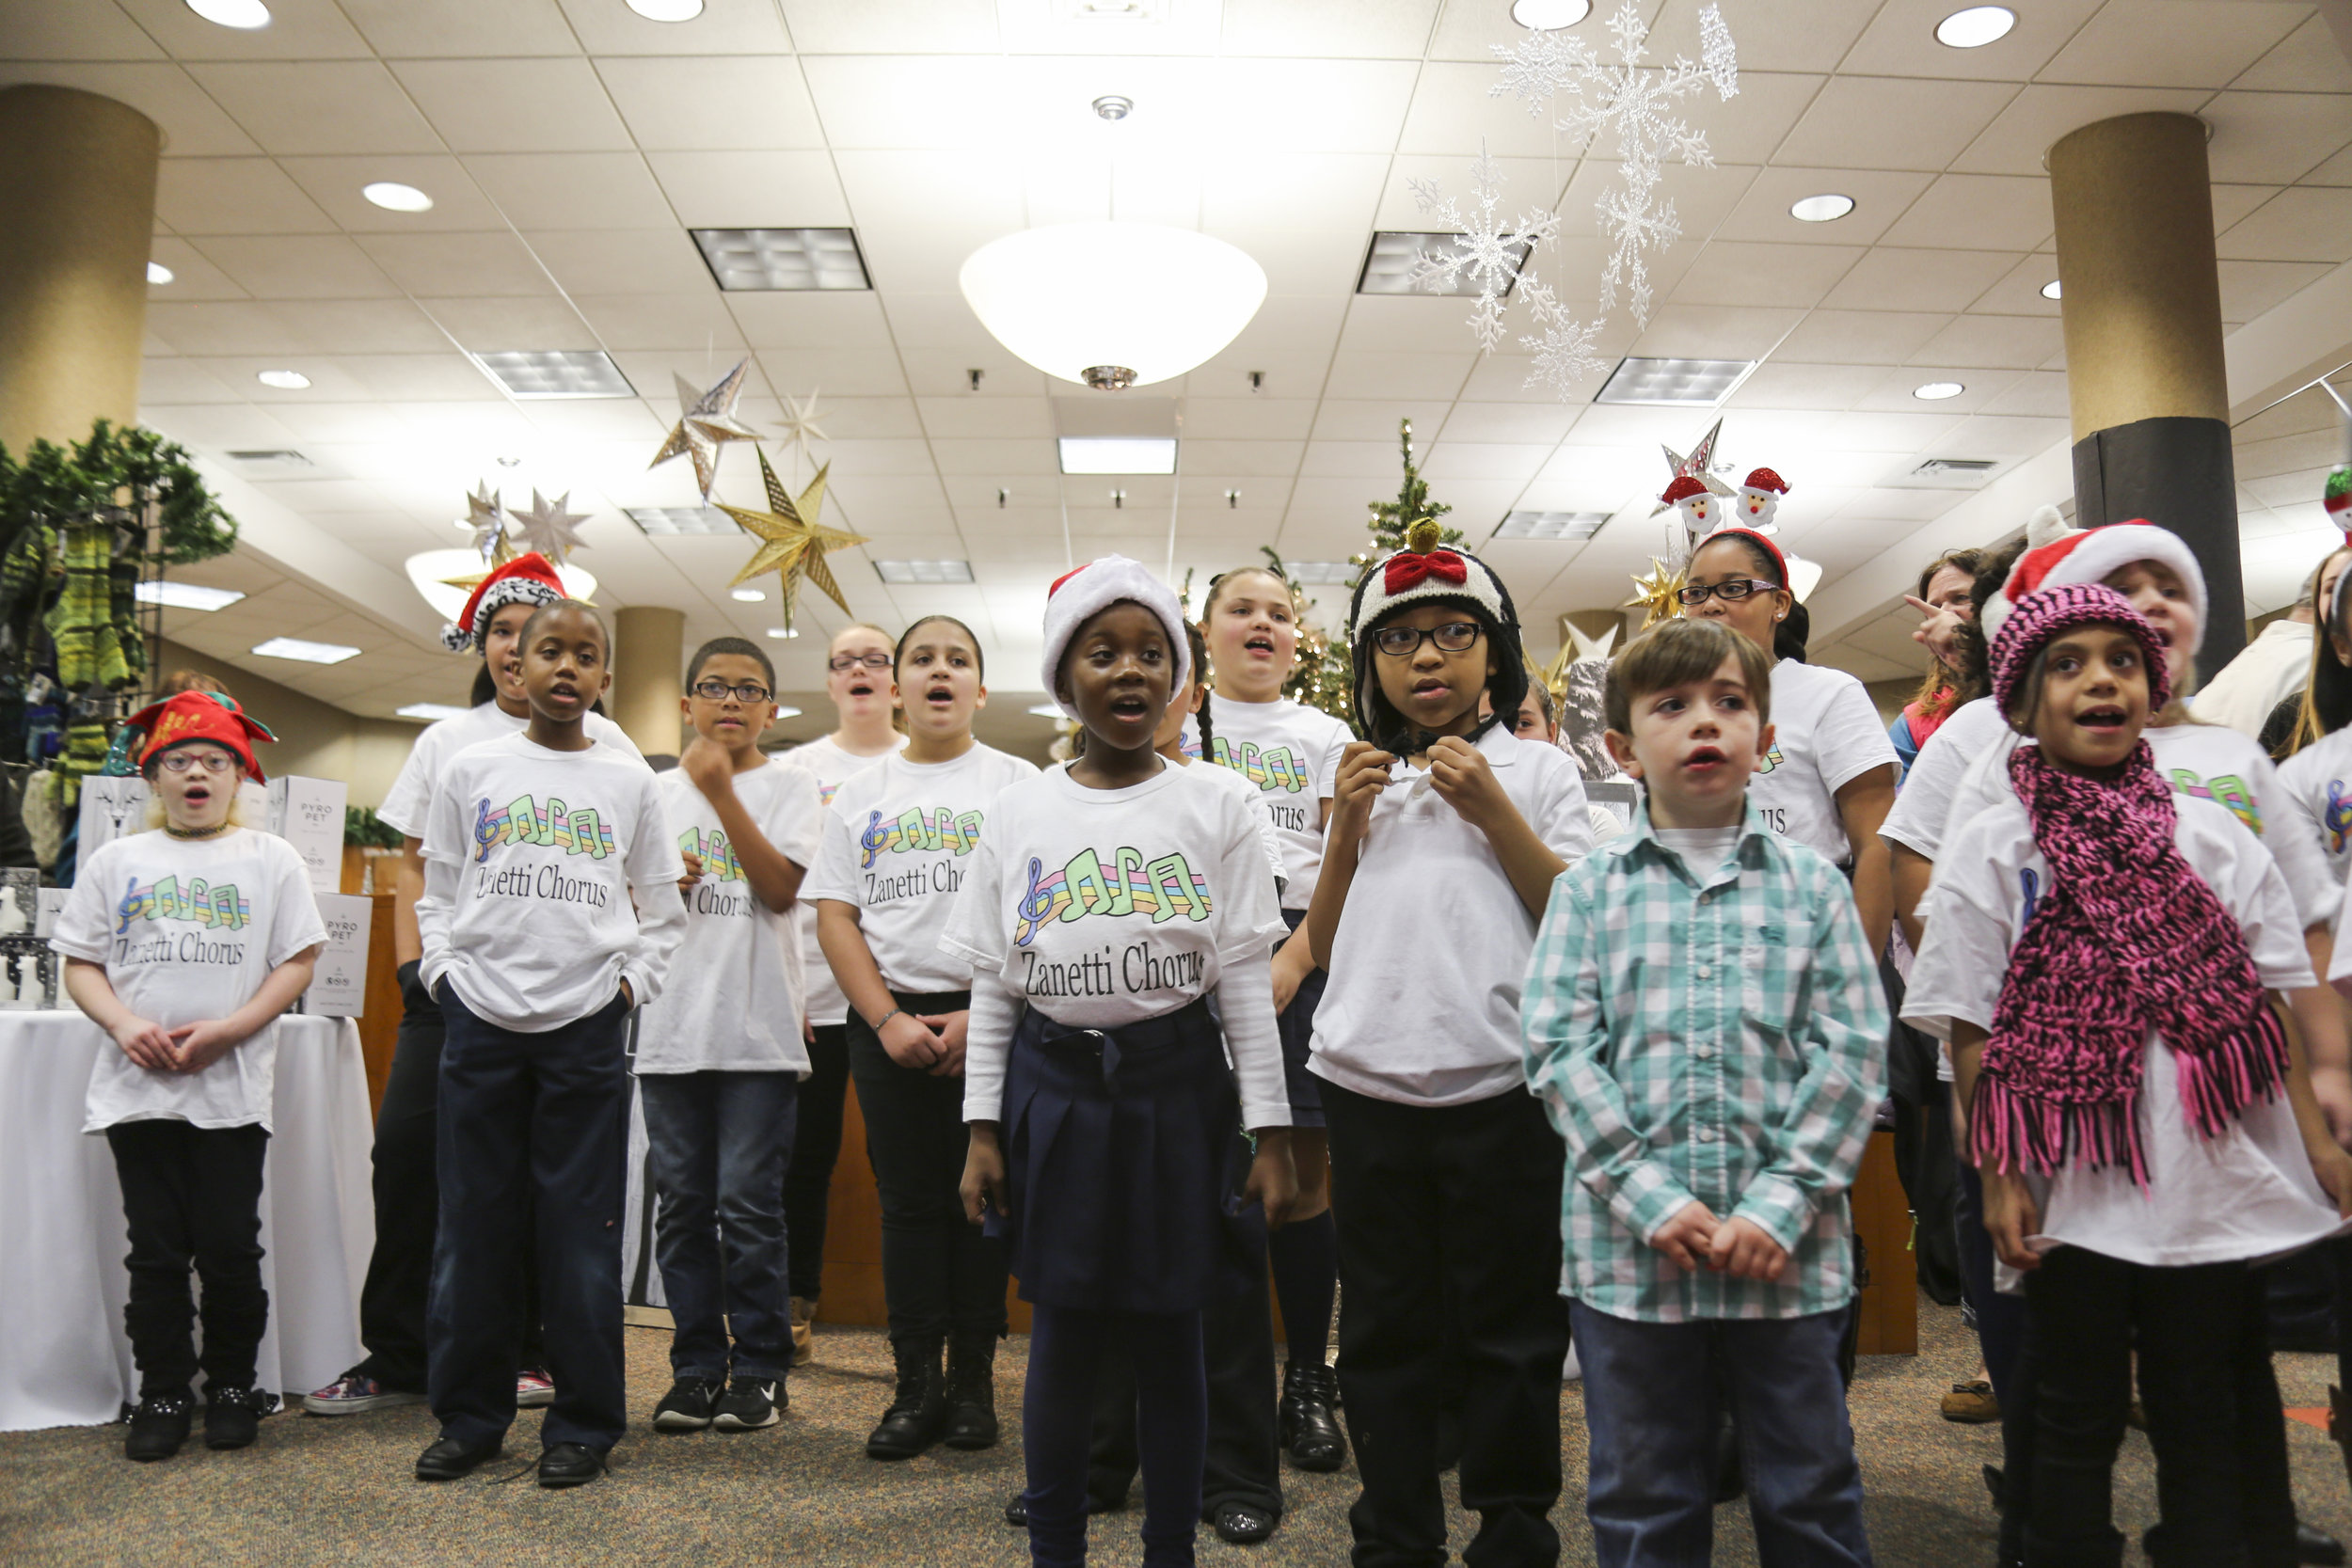 The Zanetti School Choir performs in Springfield.